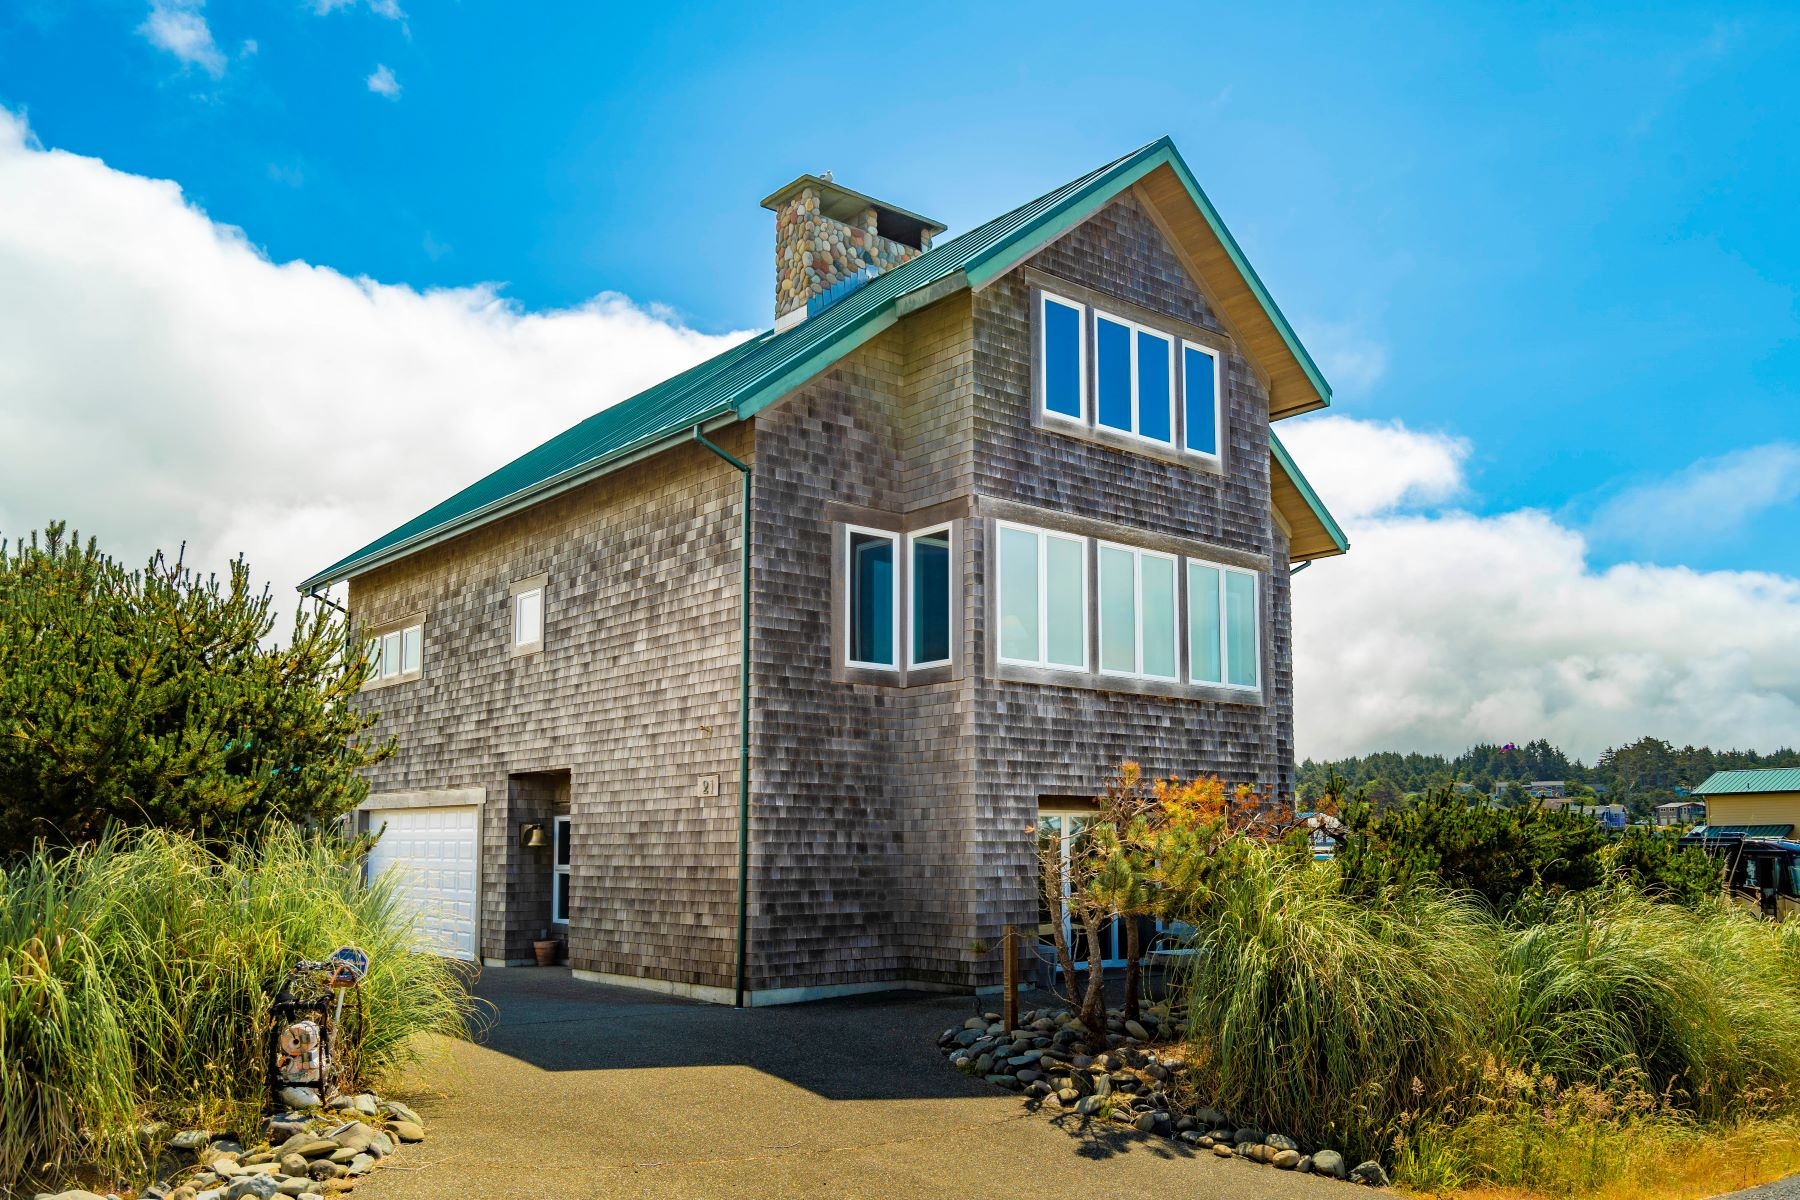 Single Family Homes for Sale at Pacific Beach Home 21 S 1st Street Pacific Beach, Washington 98571 United States